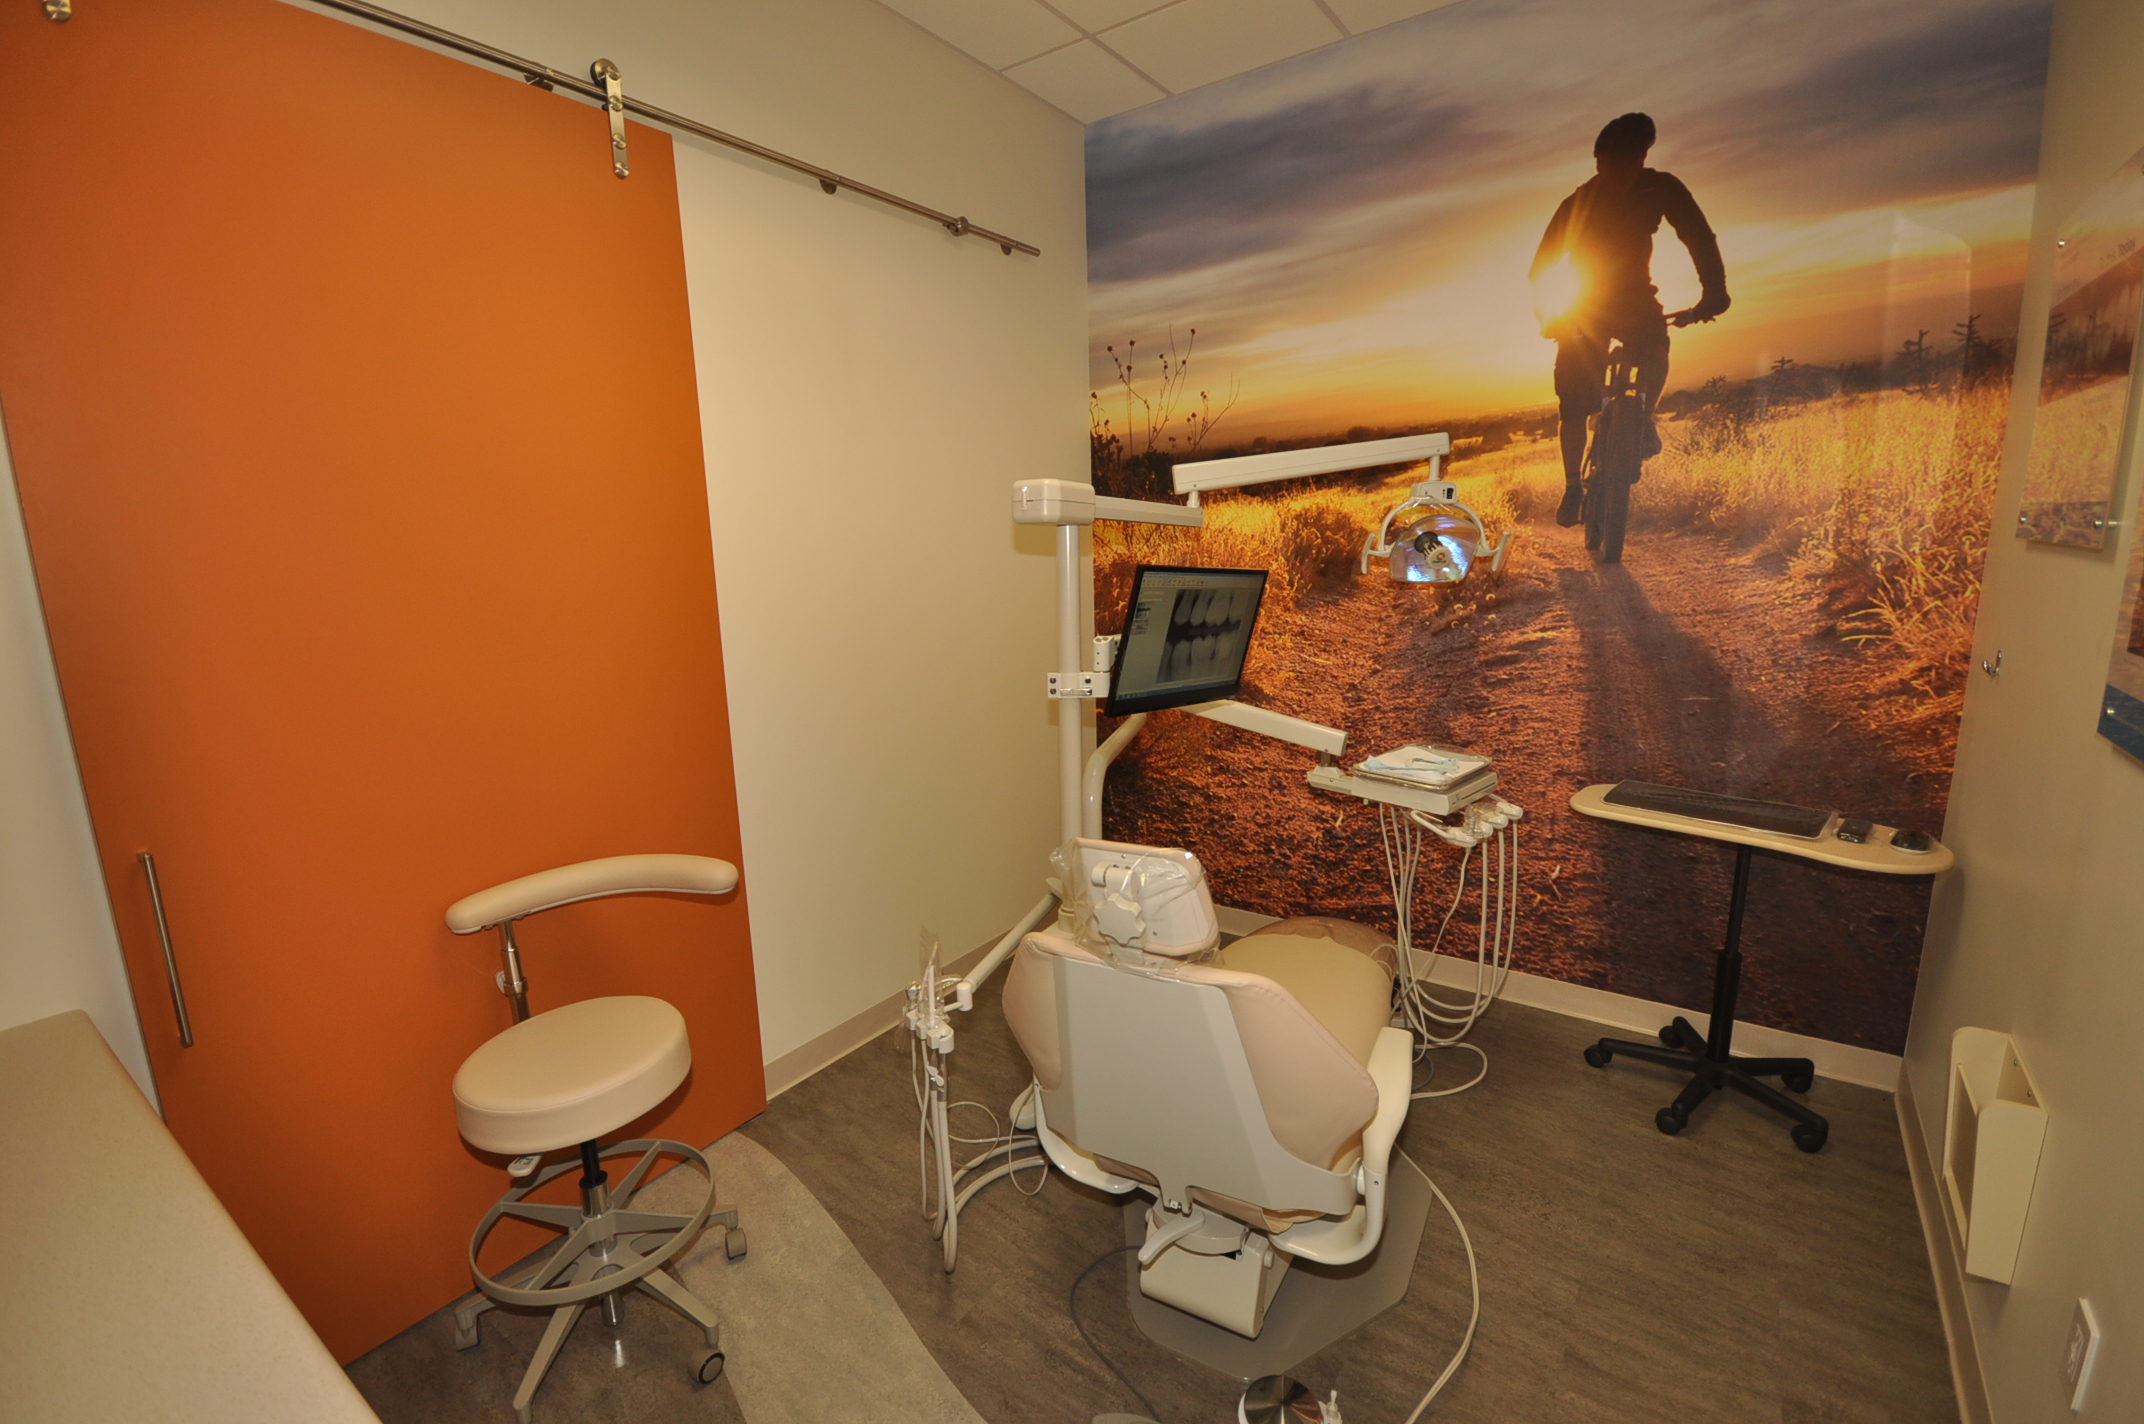 Pearland Dentists image 6